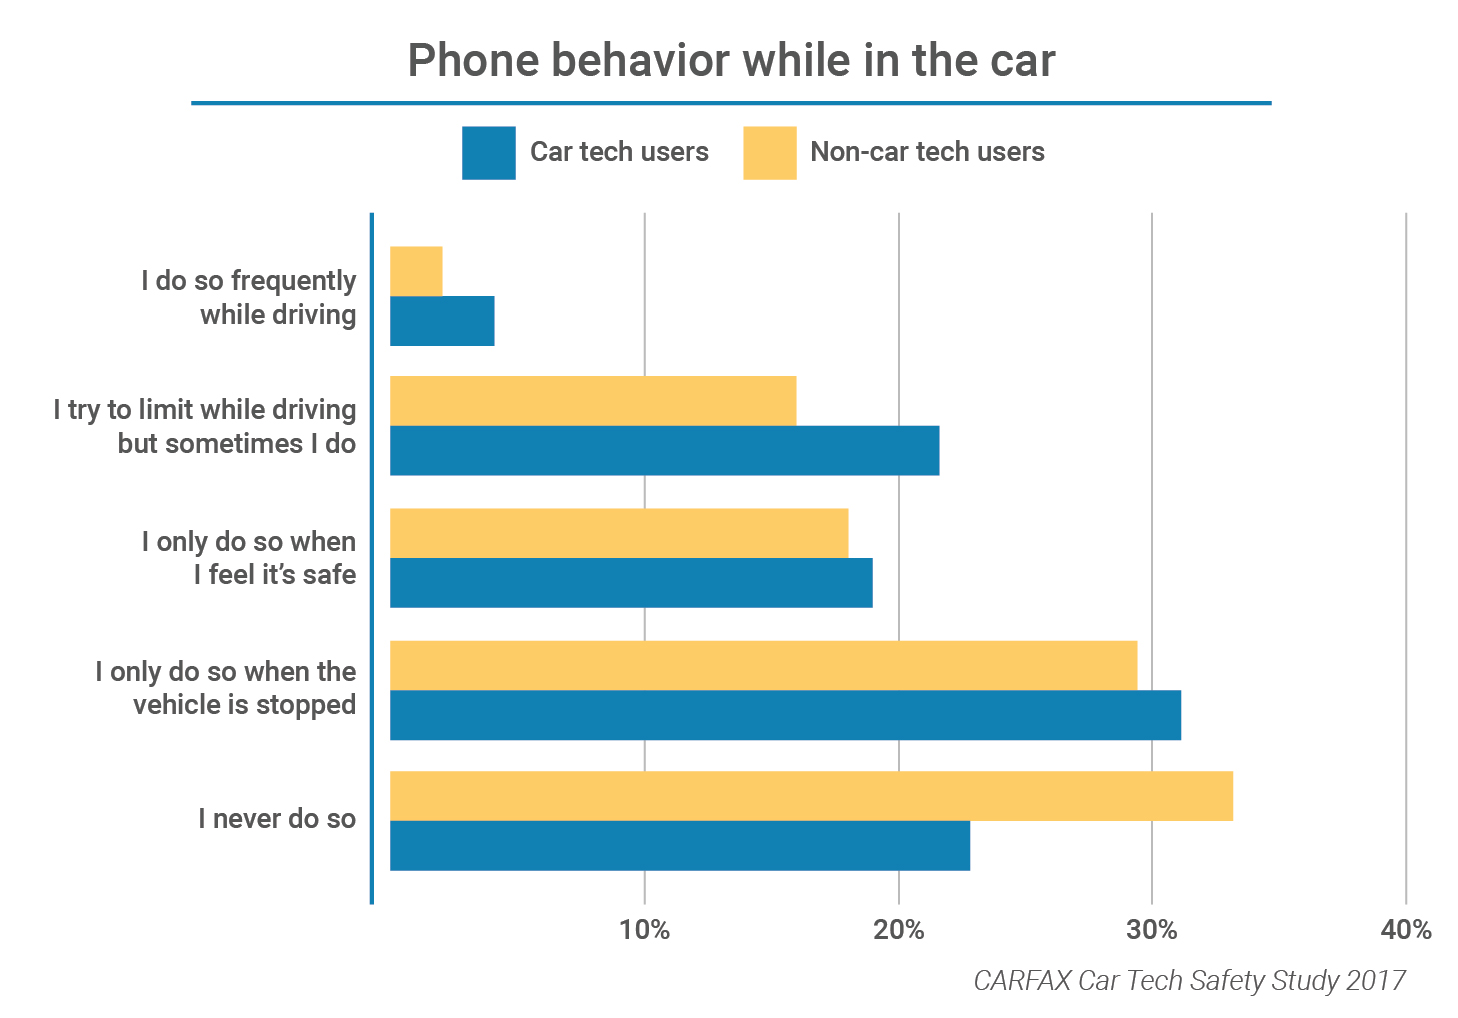 Phone behavior in car